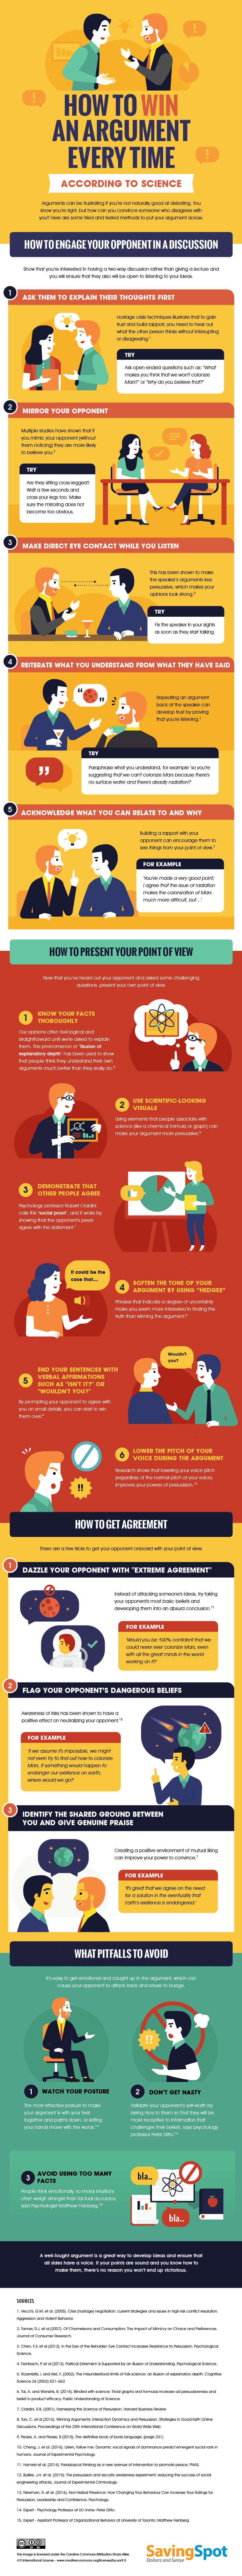 How to Win an Argument Every Time (According to Science) - infographic: